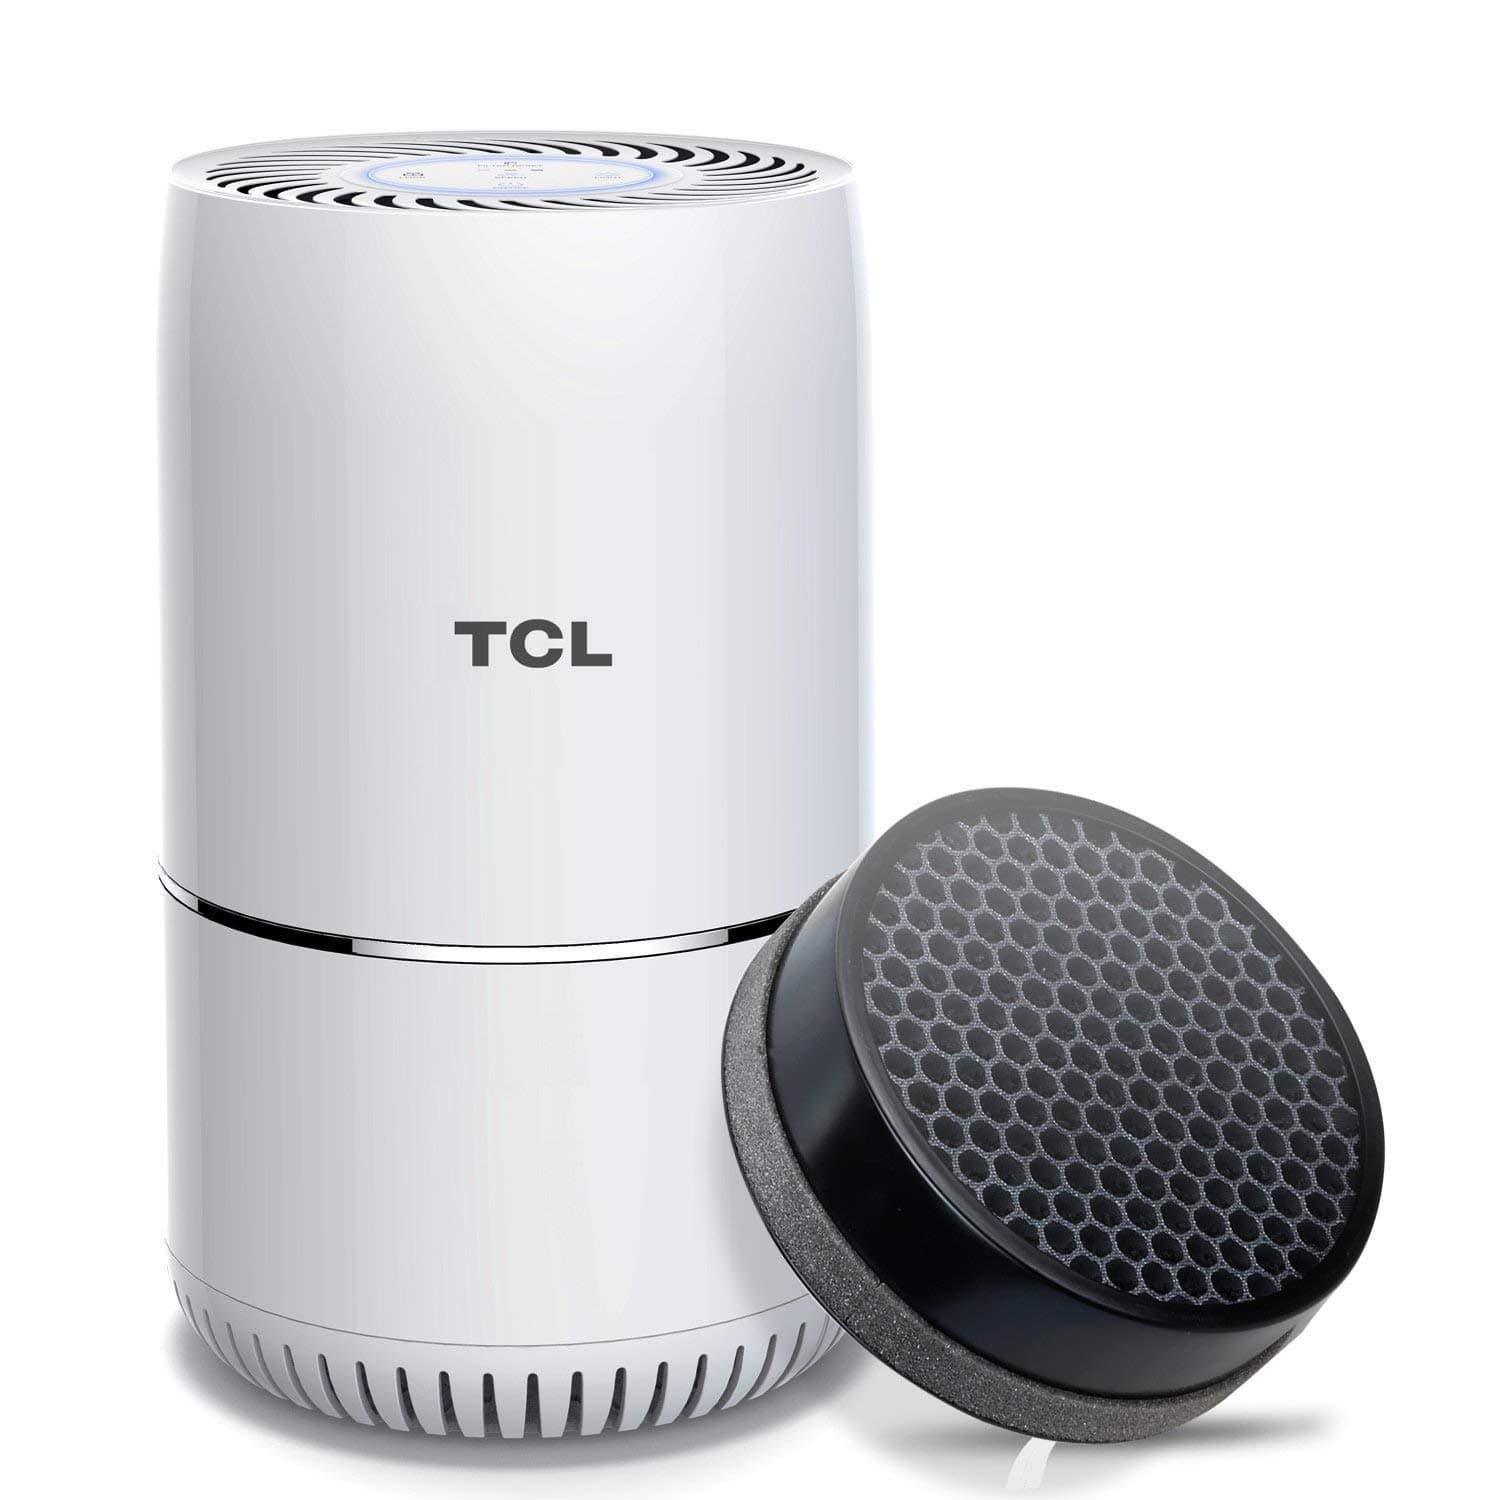 TCL HEPA Air Purifier For $39.98 before taxes + FS